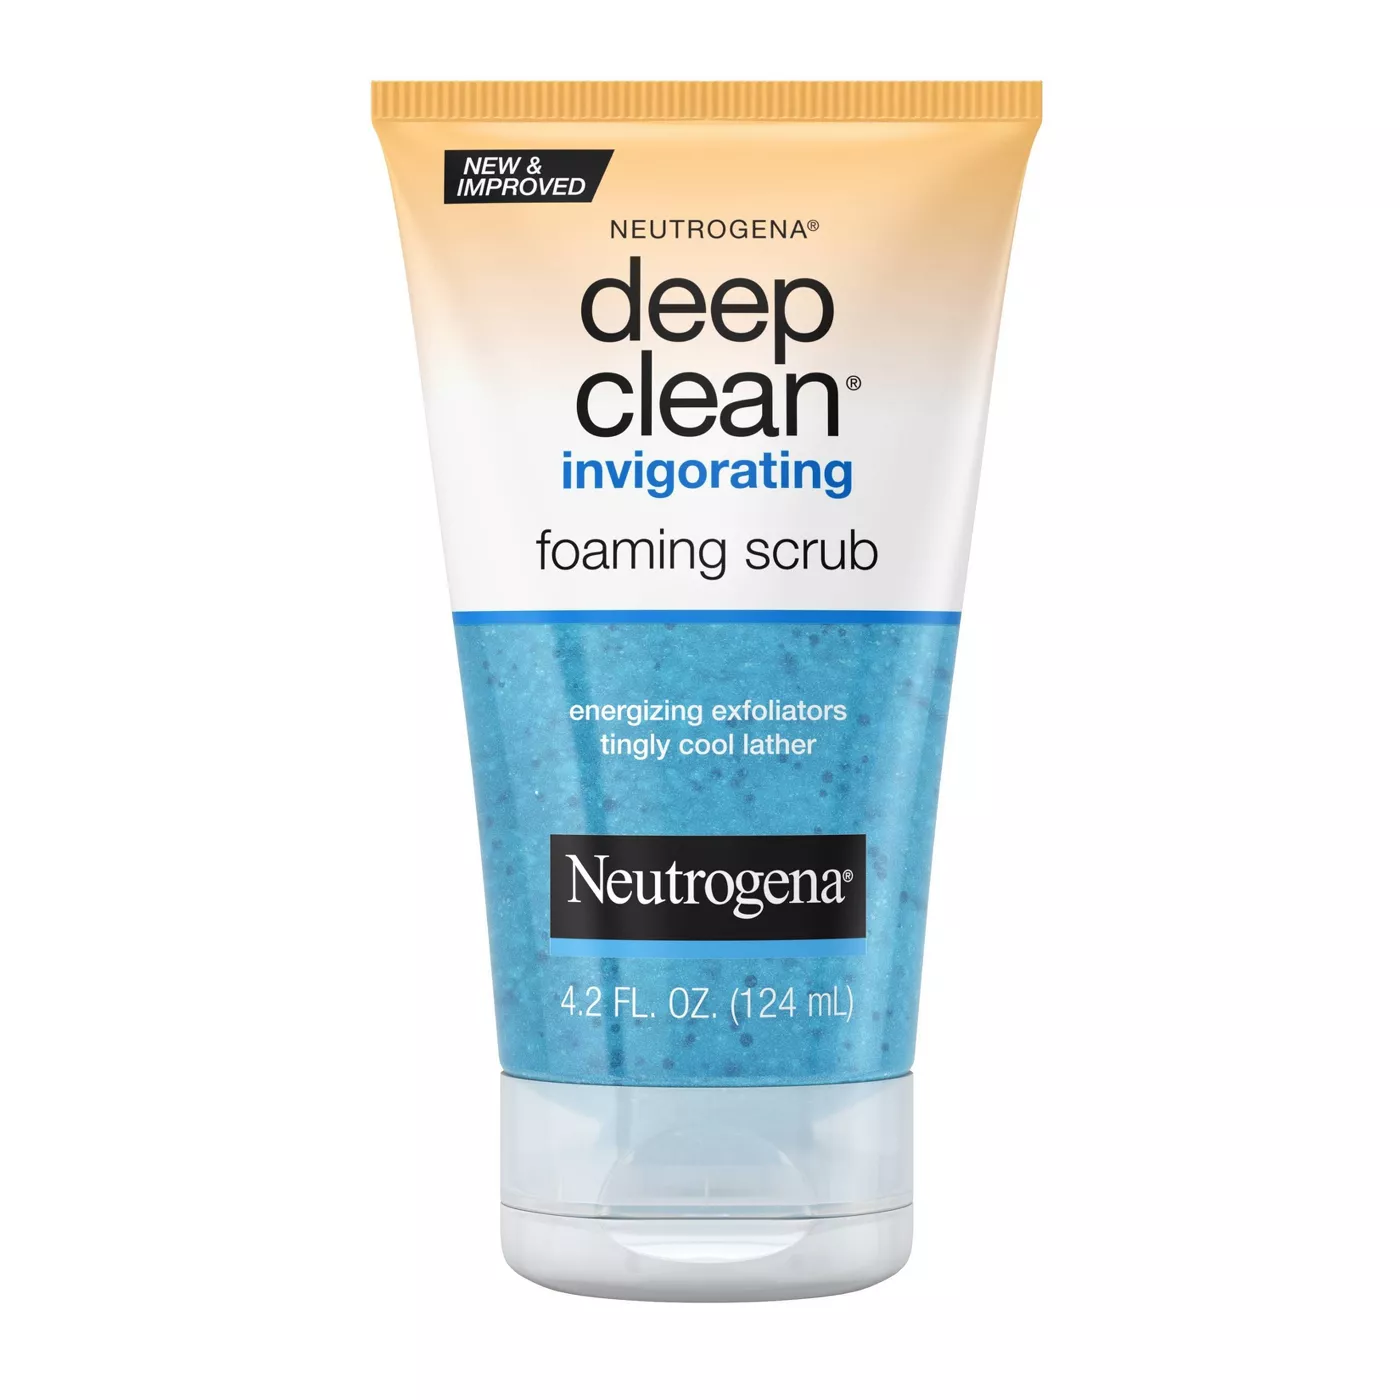 Neutrogena Deep Clean Invigorating Foaming Scrub 4.2 Oz